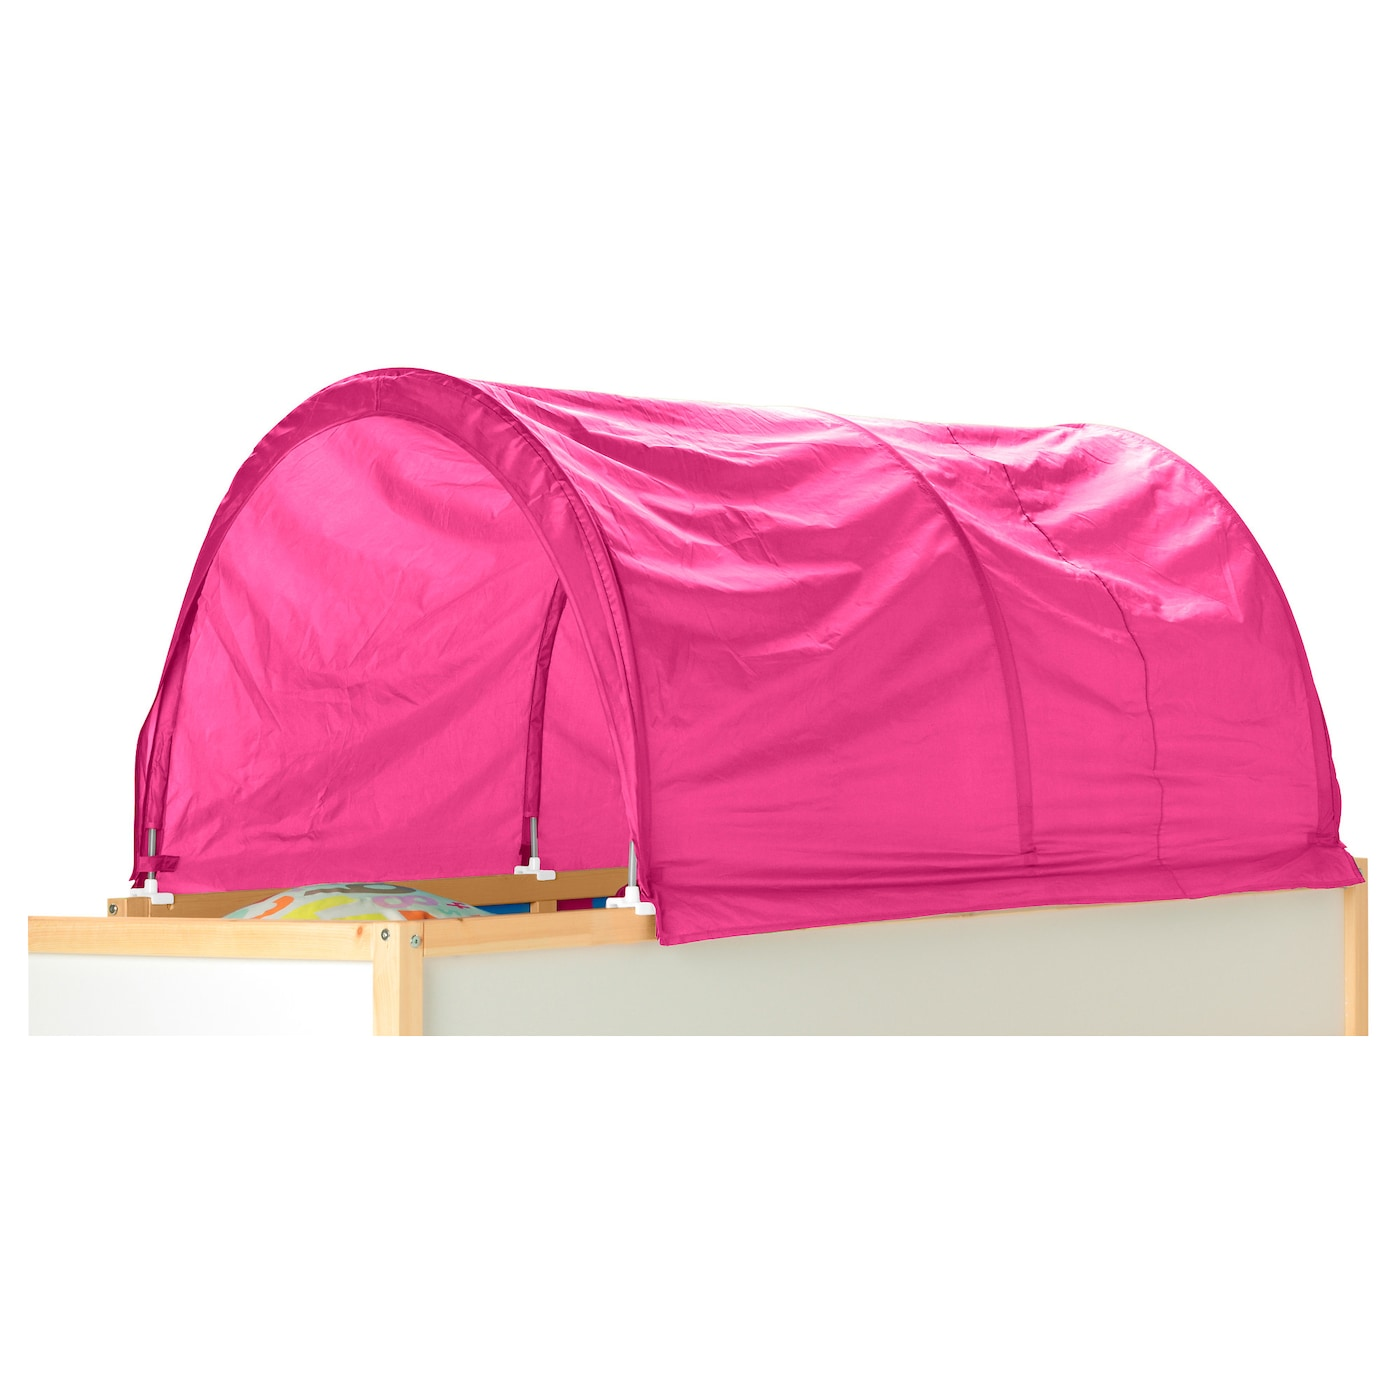 Home images ikea kura bed ikea kura bed facebook twitter google - Ikea Kura Bed Tent Fits The Bed Both In A Low And A High Position